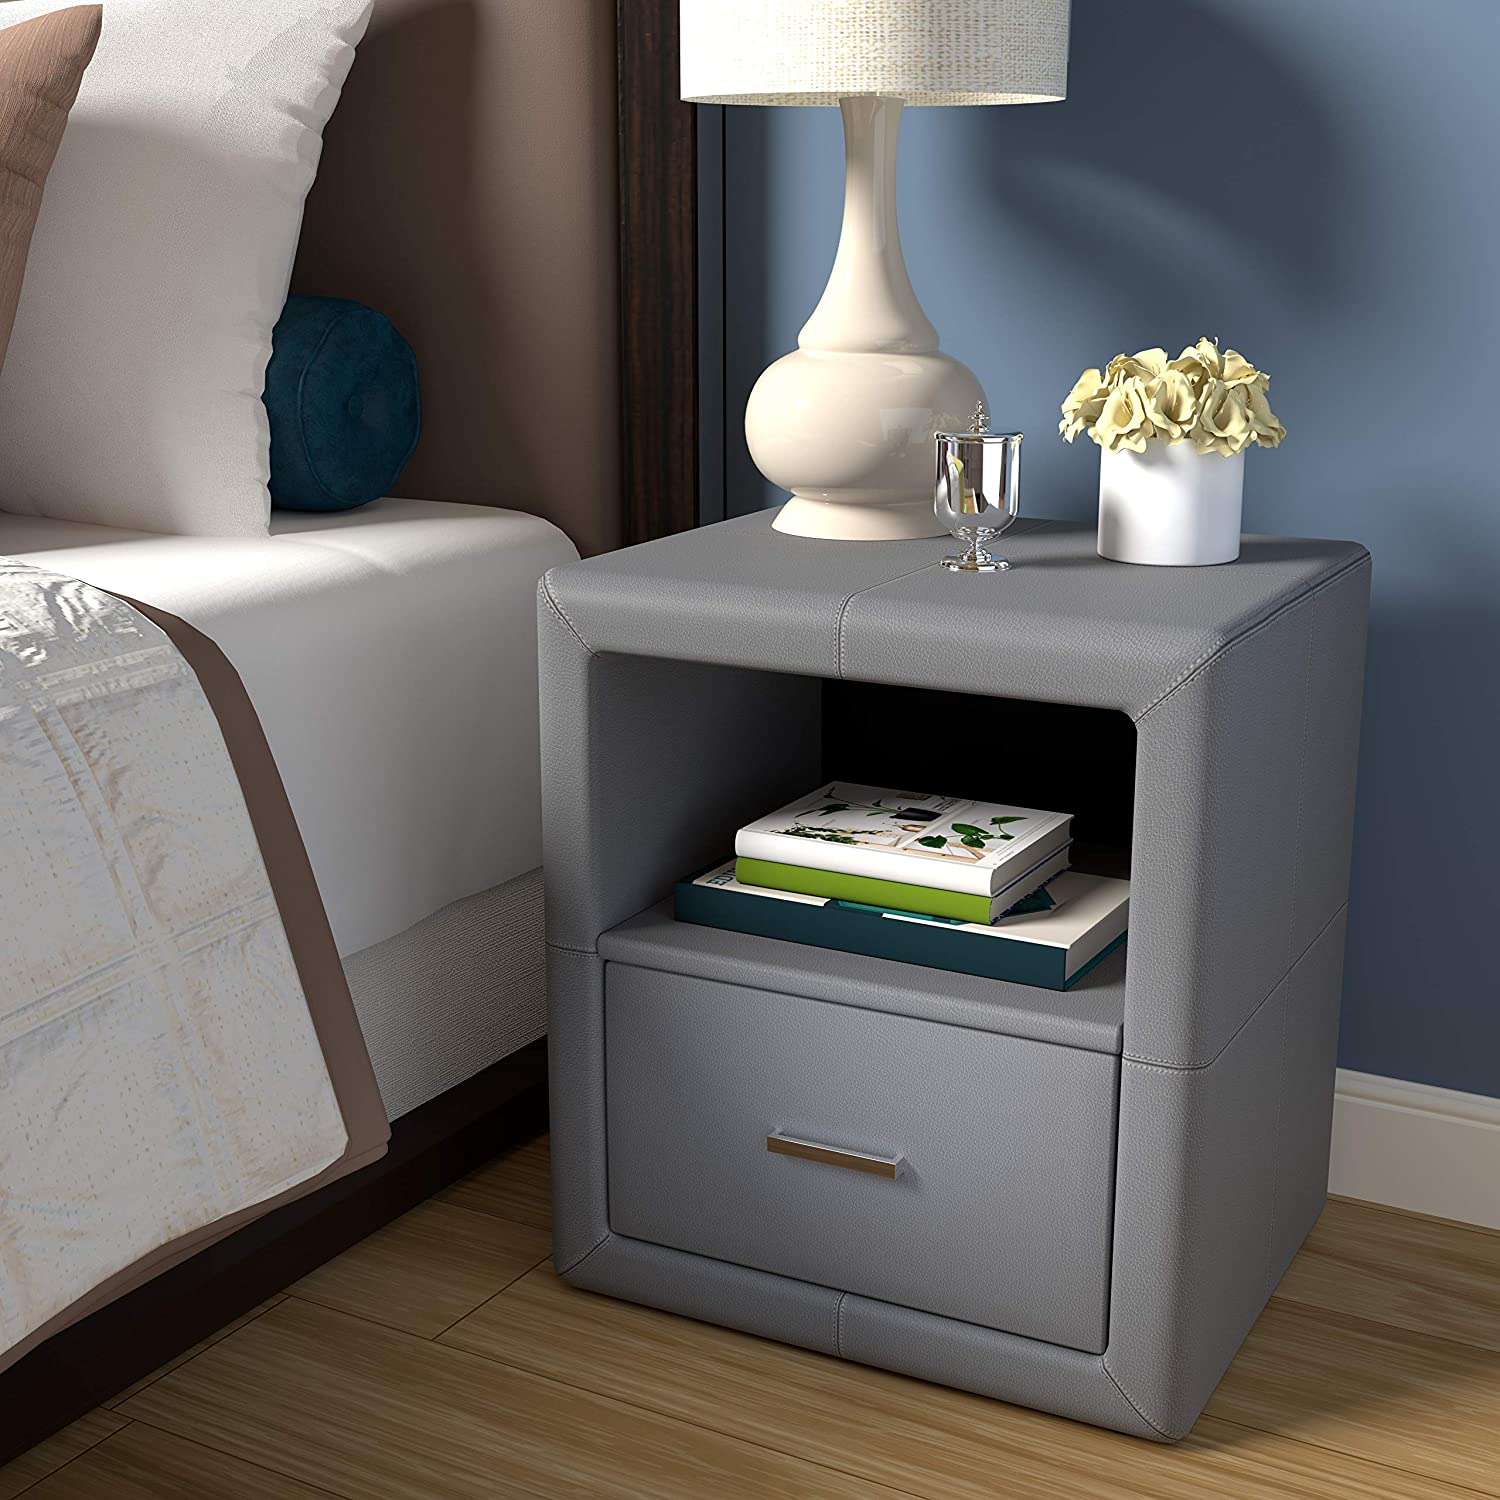 Boyd Sleep Contemporary Bedroom Furniture: Lombardi Upholstered Nightstand with Single Drawer and Open Shelf, Faux Leather, Grey